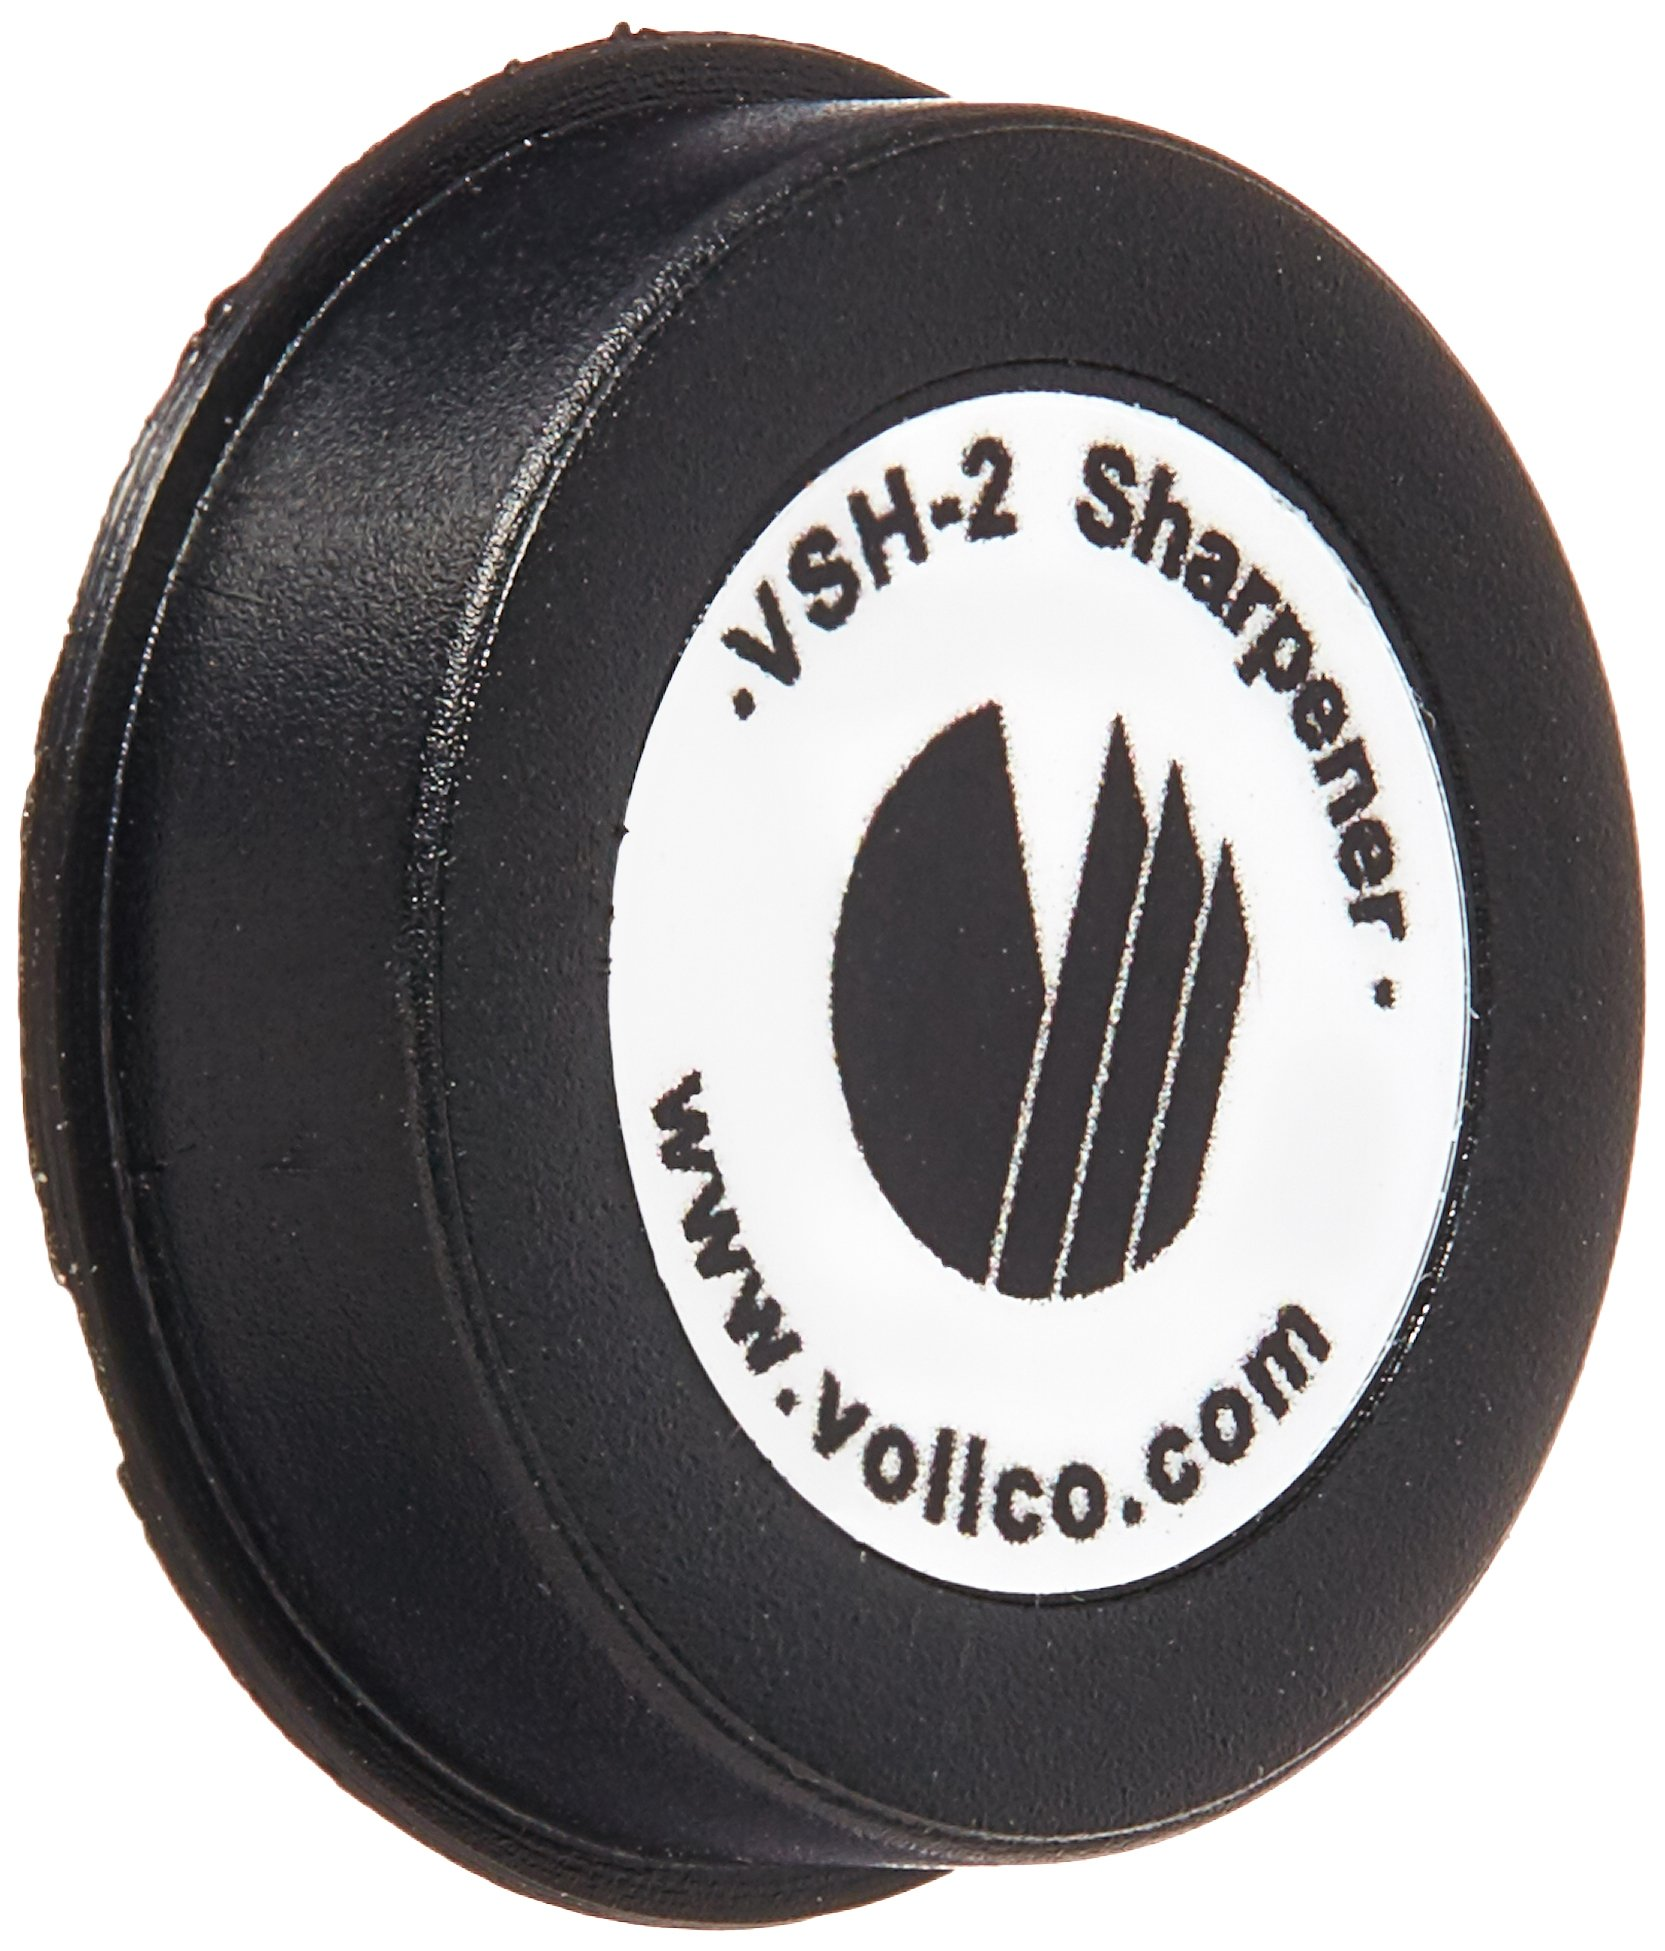 Vollco Sharpening Heads VSH-2 Black - Sharpens All Philips Norelco Shavers Using These Replacement Heads: HQ-167, HQ-177, HQ-5, HQ-55, HQ-56, HQ-6 HQ-7, HQ-8, SH-30 and SH-50